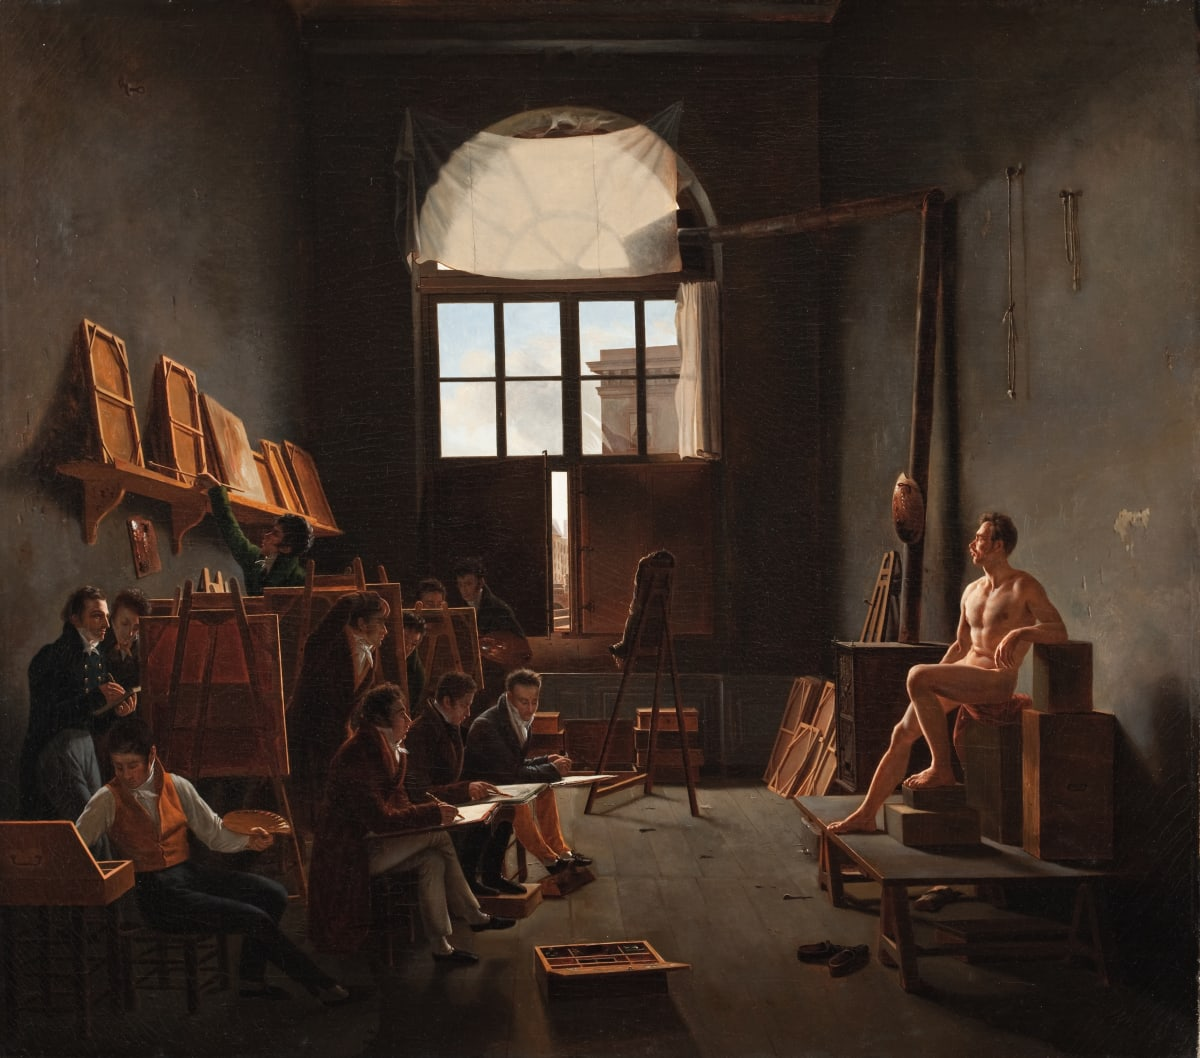 Léon-Mathieu Cochereau The Studio of Jacques-Louis David, 1814 Oil on canvas 91.1 x 102.87 cm 35 7/8 x 40 1/2 in